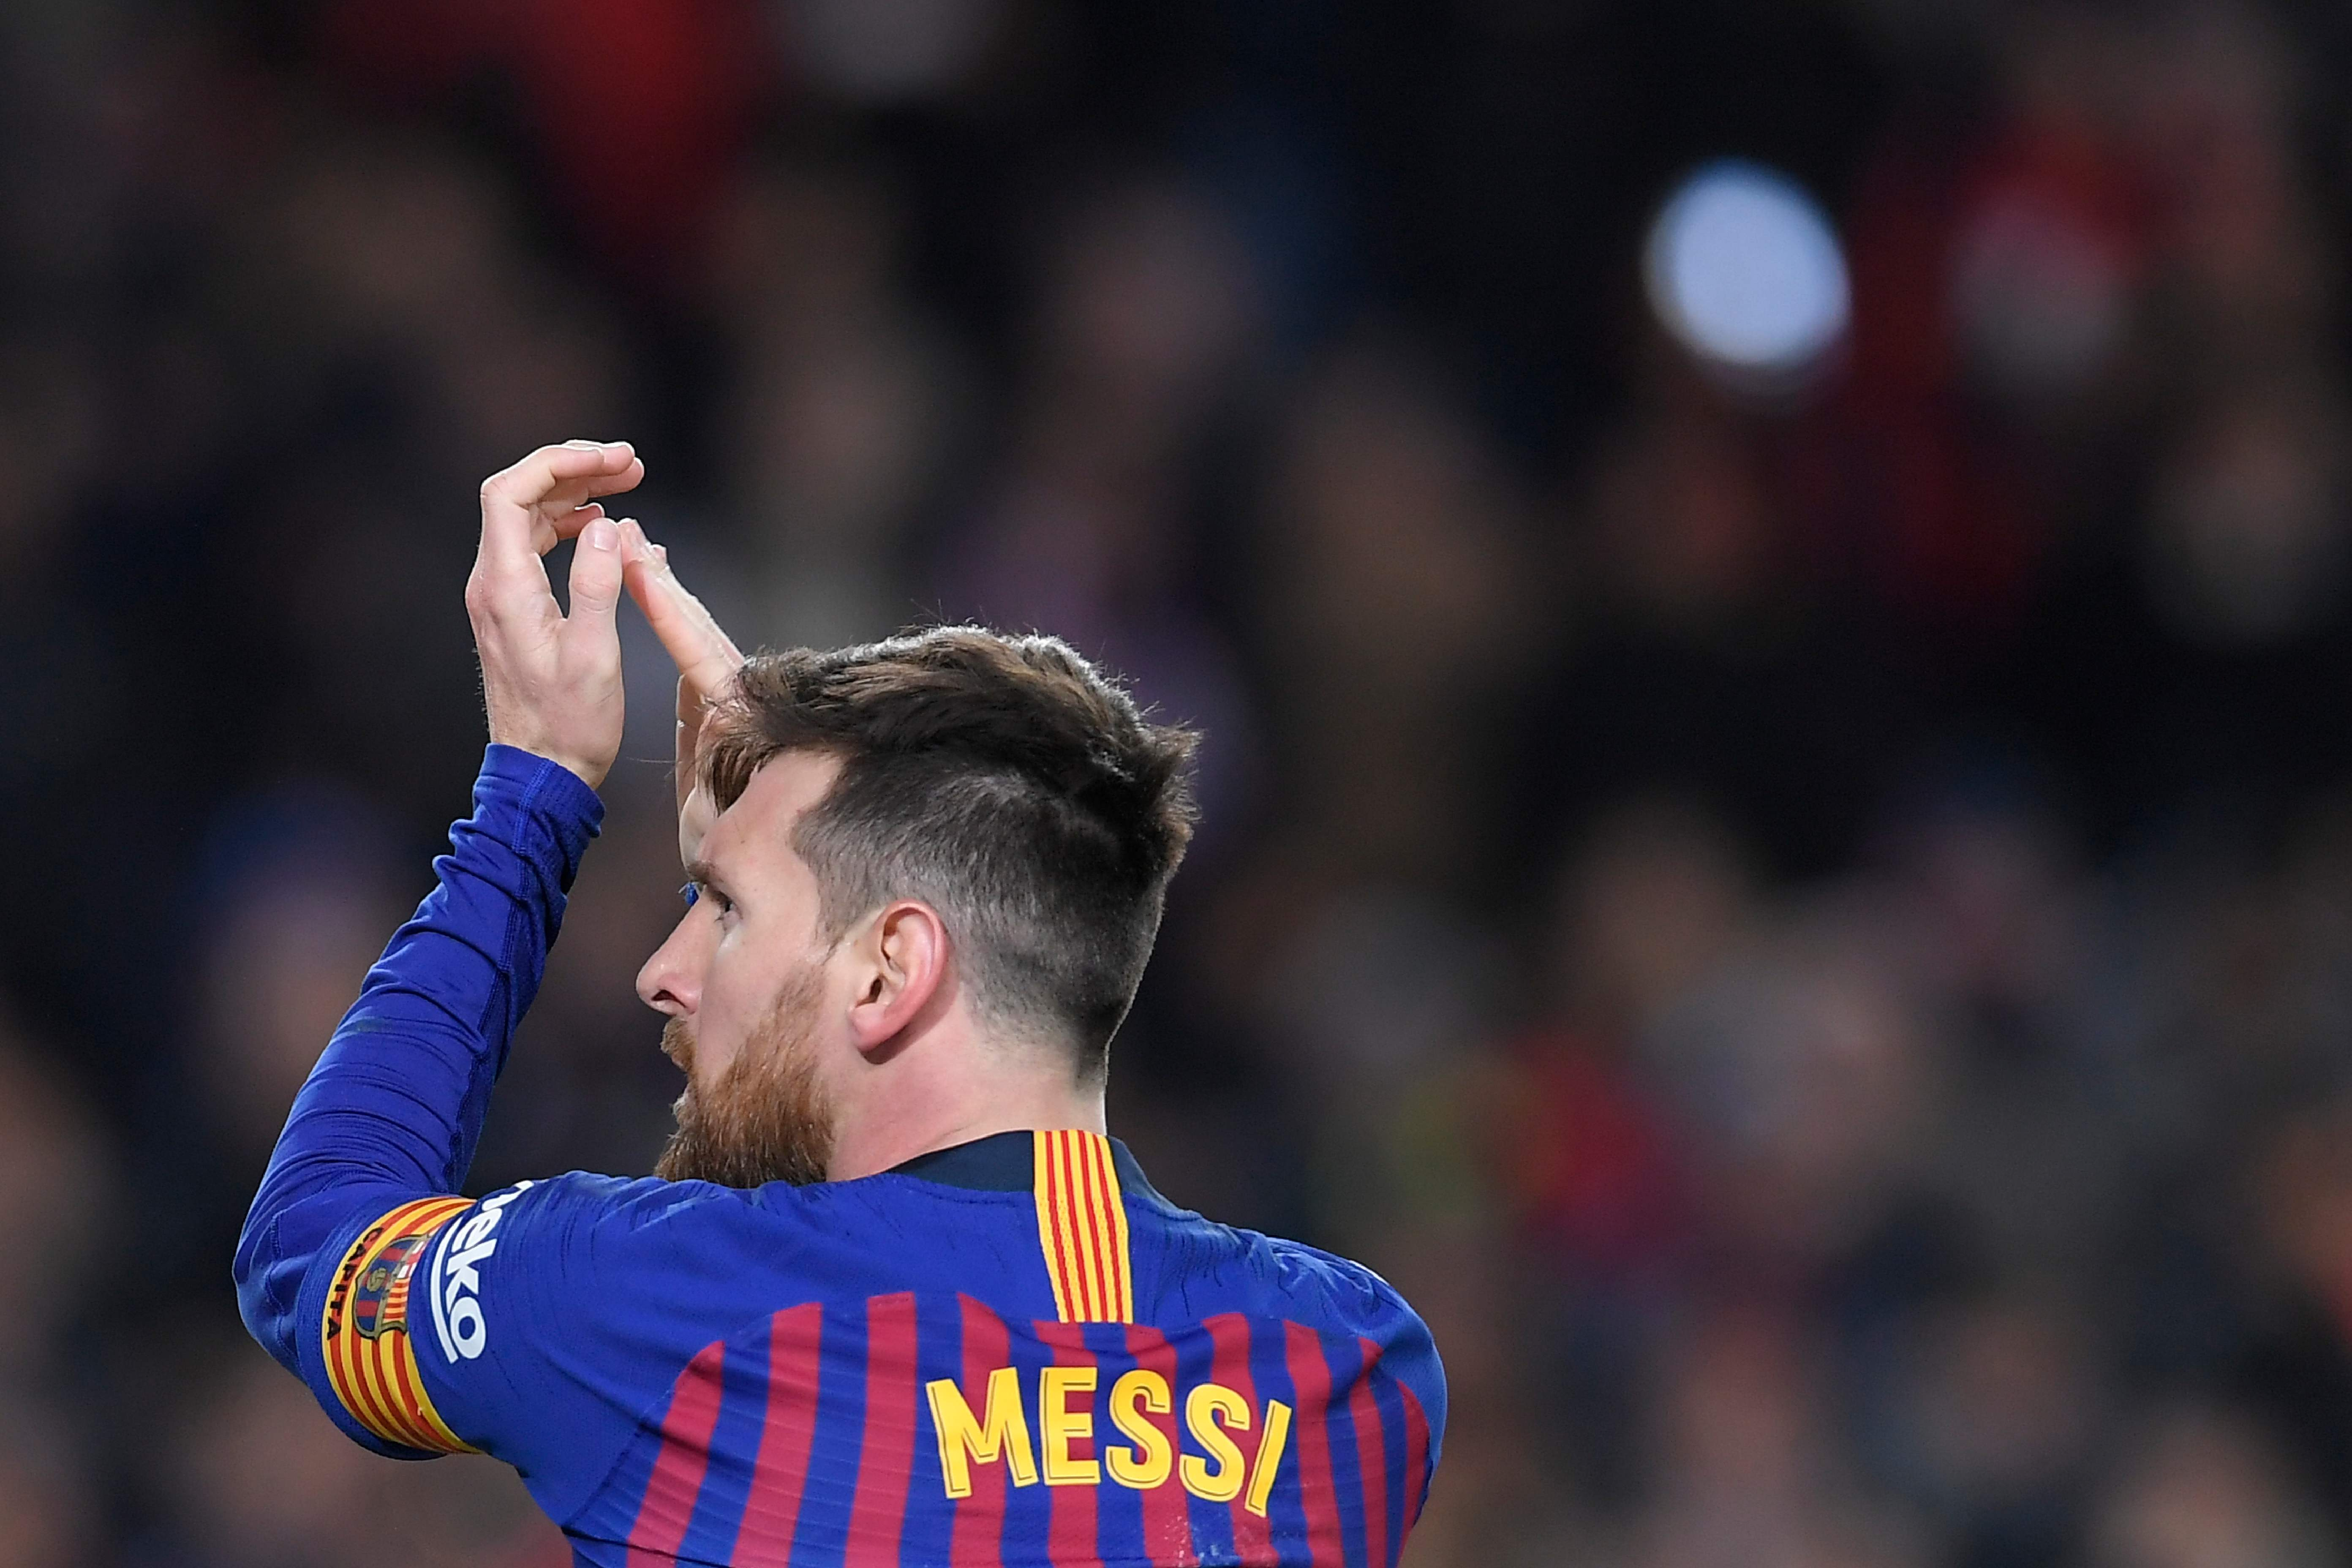 Barcelona's Argentinian forward Lionel Messi applauds during the Spanish Copa del Rey (King's Cup) quarter-final second leg football match between Barcelona and Sevilla at the Camp Nou stadium in Barcelona on January 30, 2019. (Photo by LLUIS GENE / AFP)